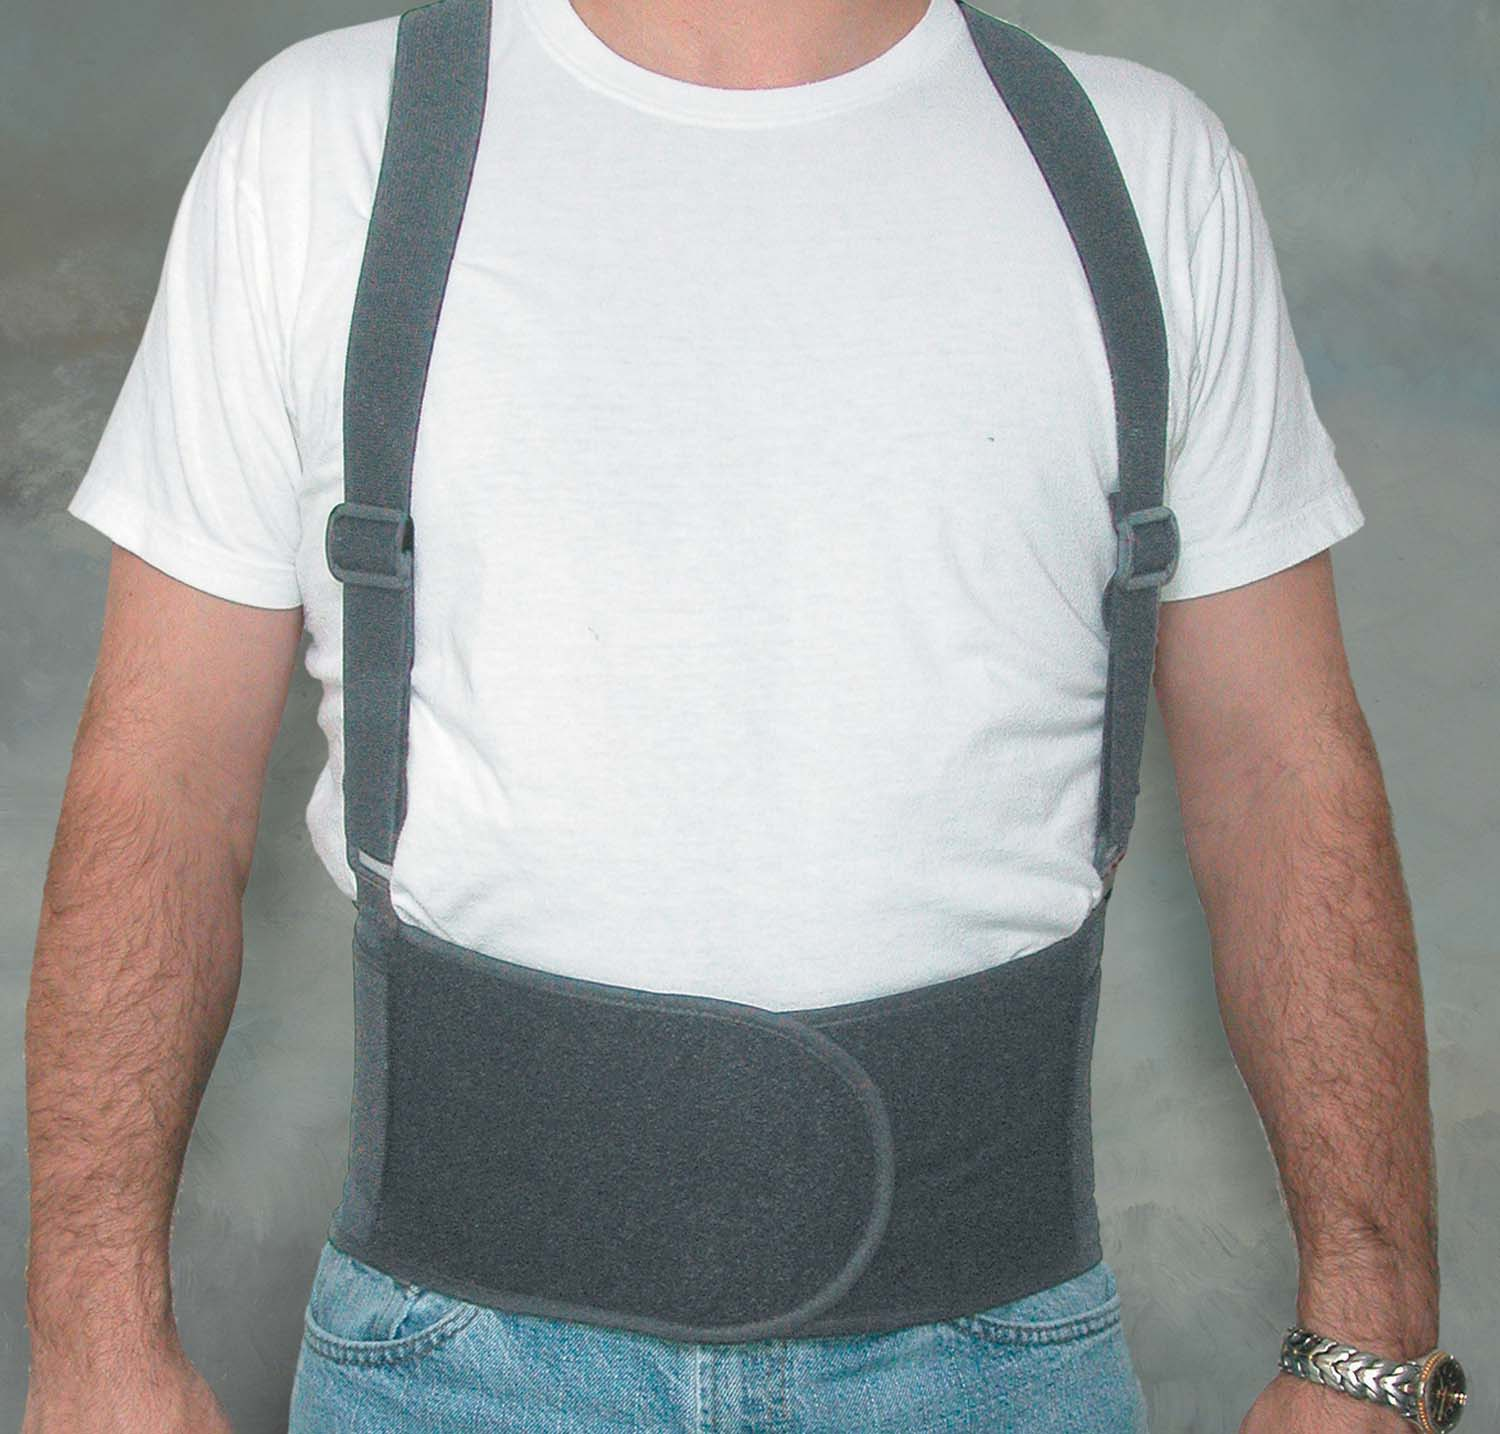 industrial-lumbar-support-w-shoulder-straps-small-632-6390-0221-lr-2.jpg